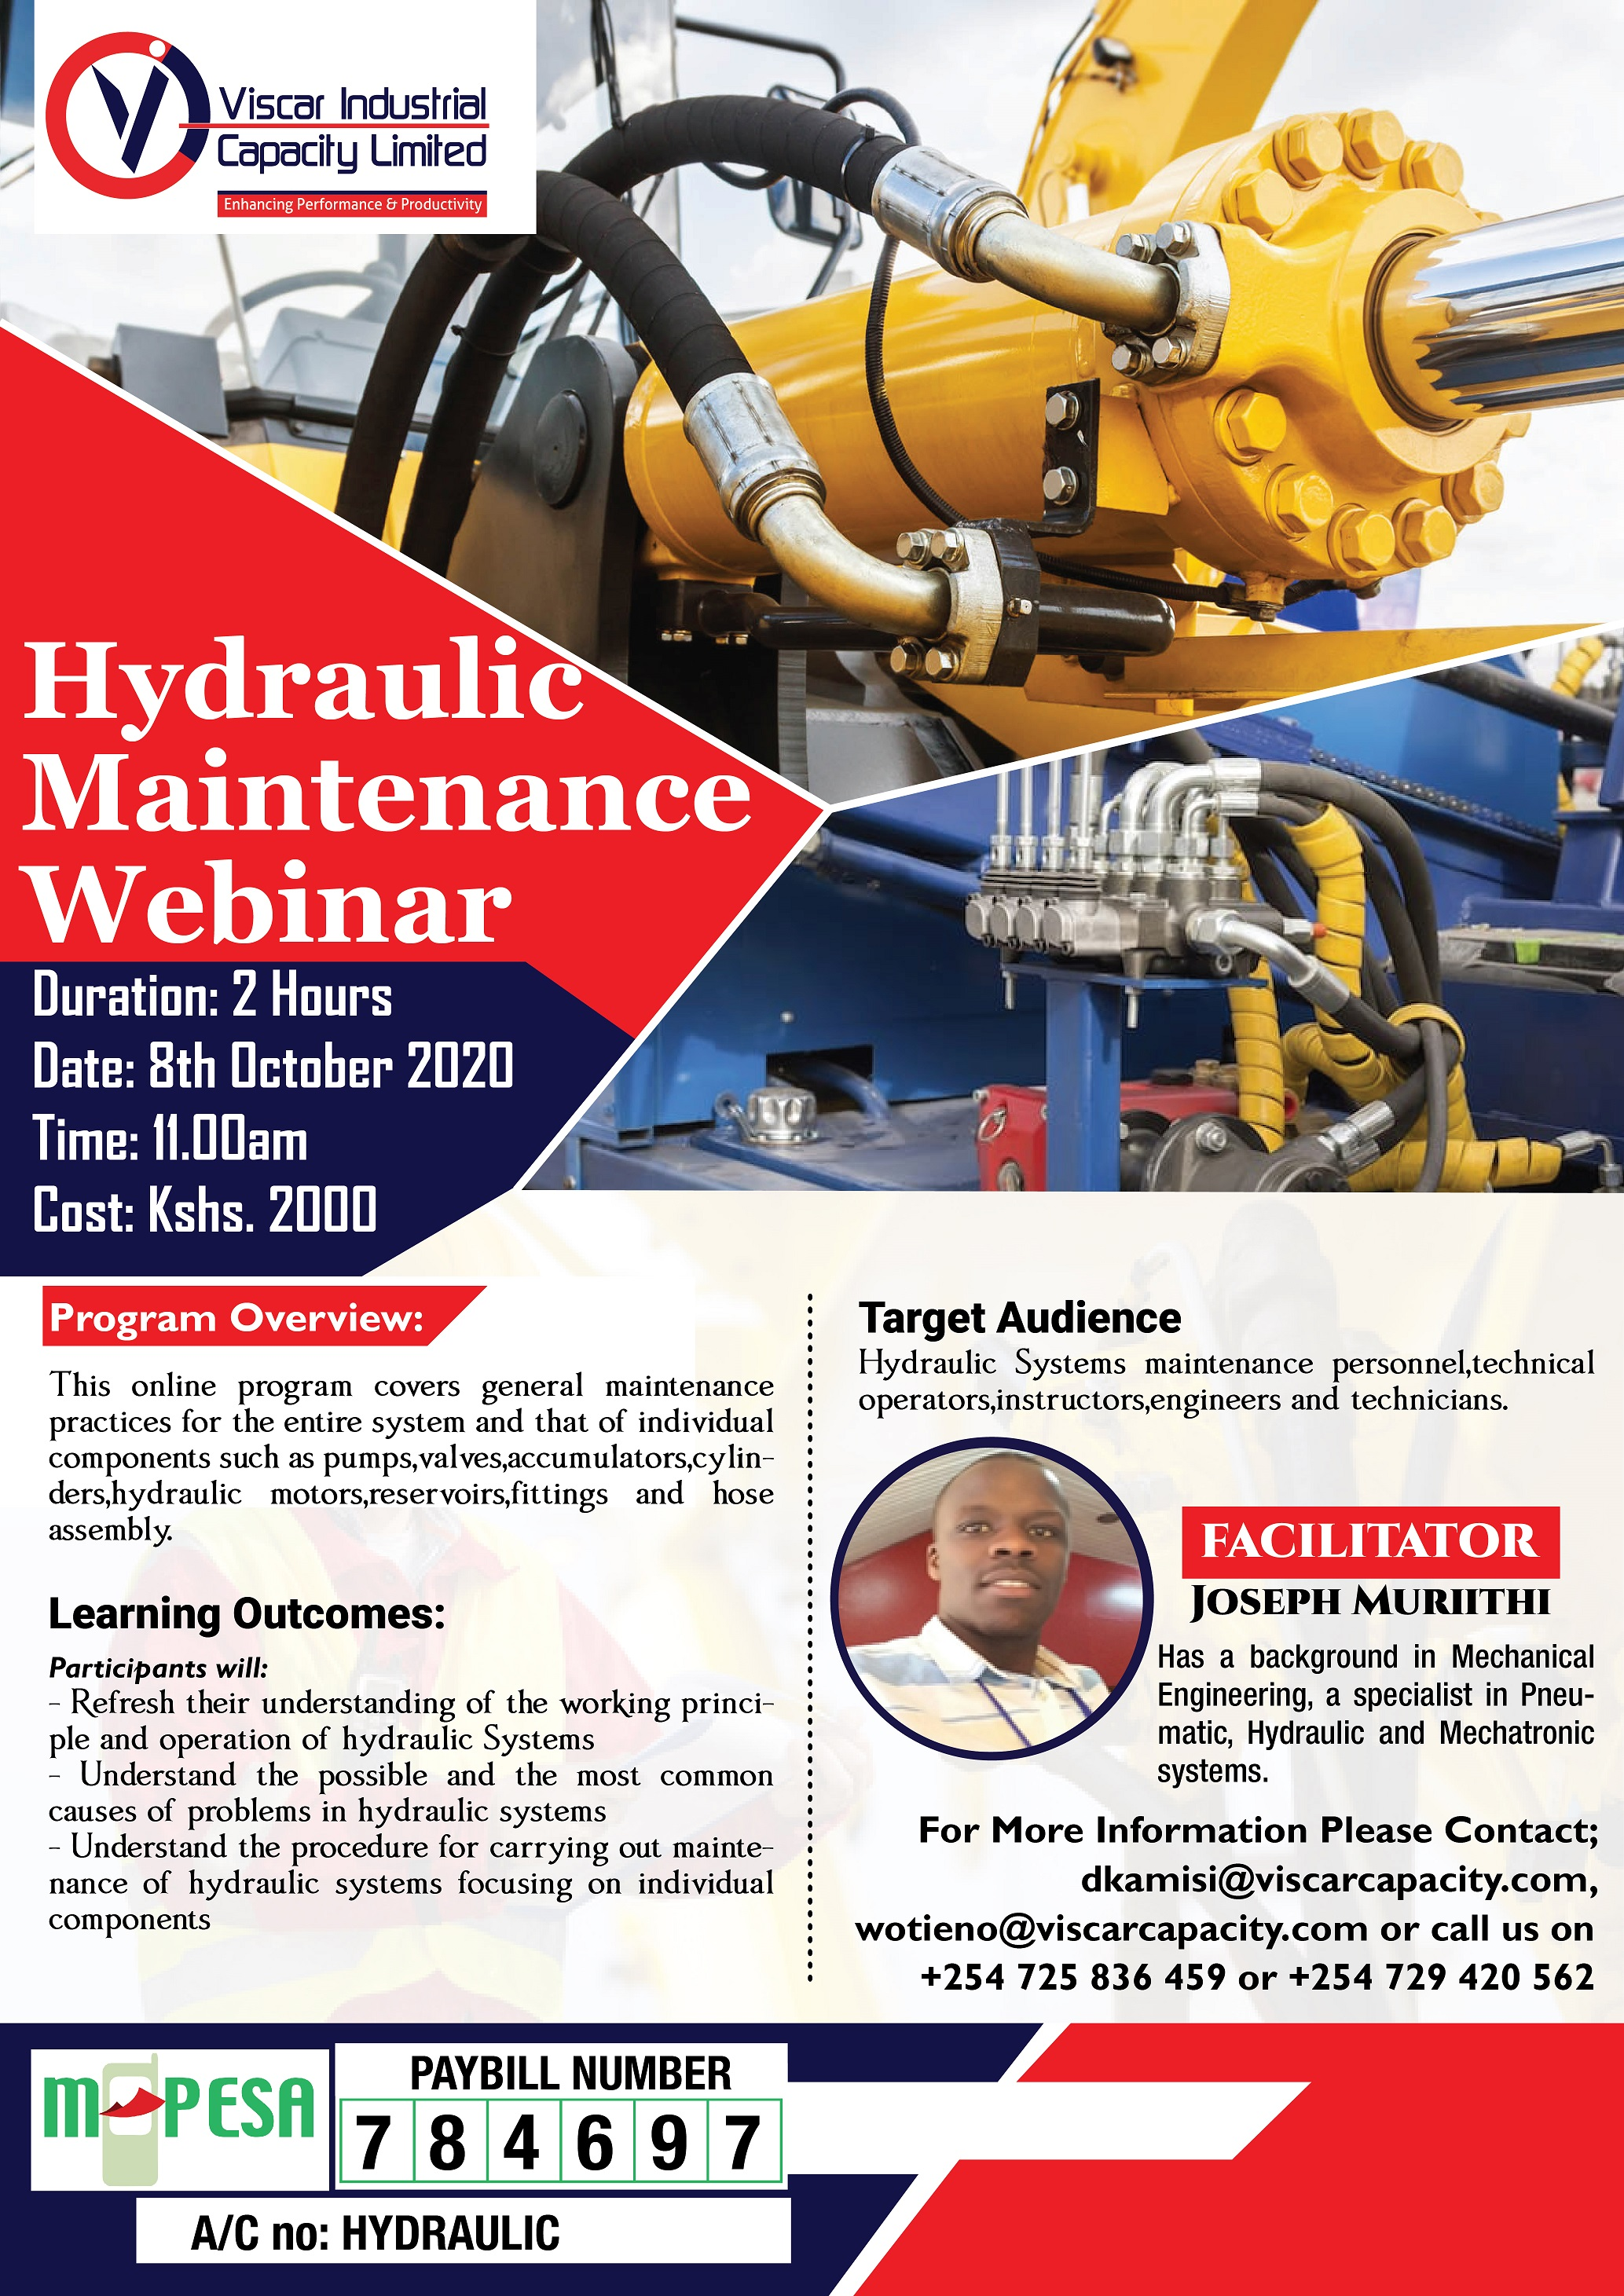 HYDRAULIC SYSTEMS MAINTENANCE WEBINAR